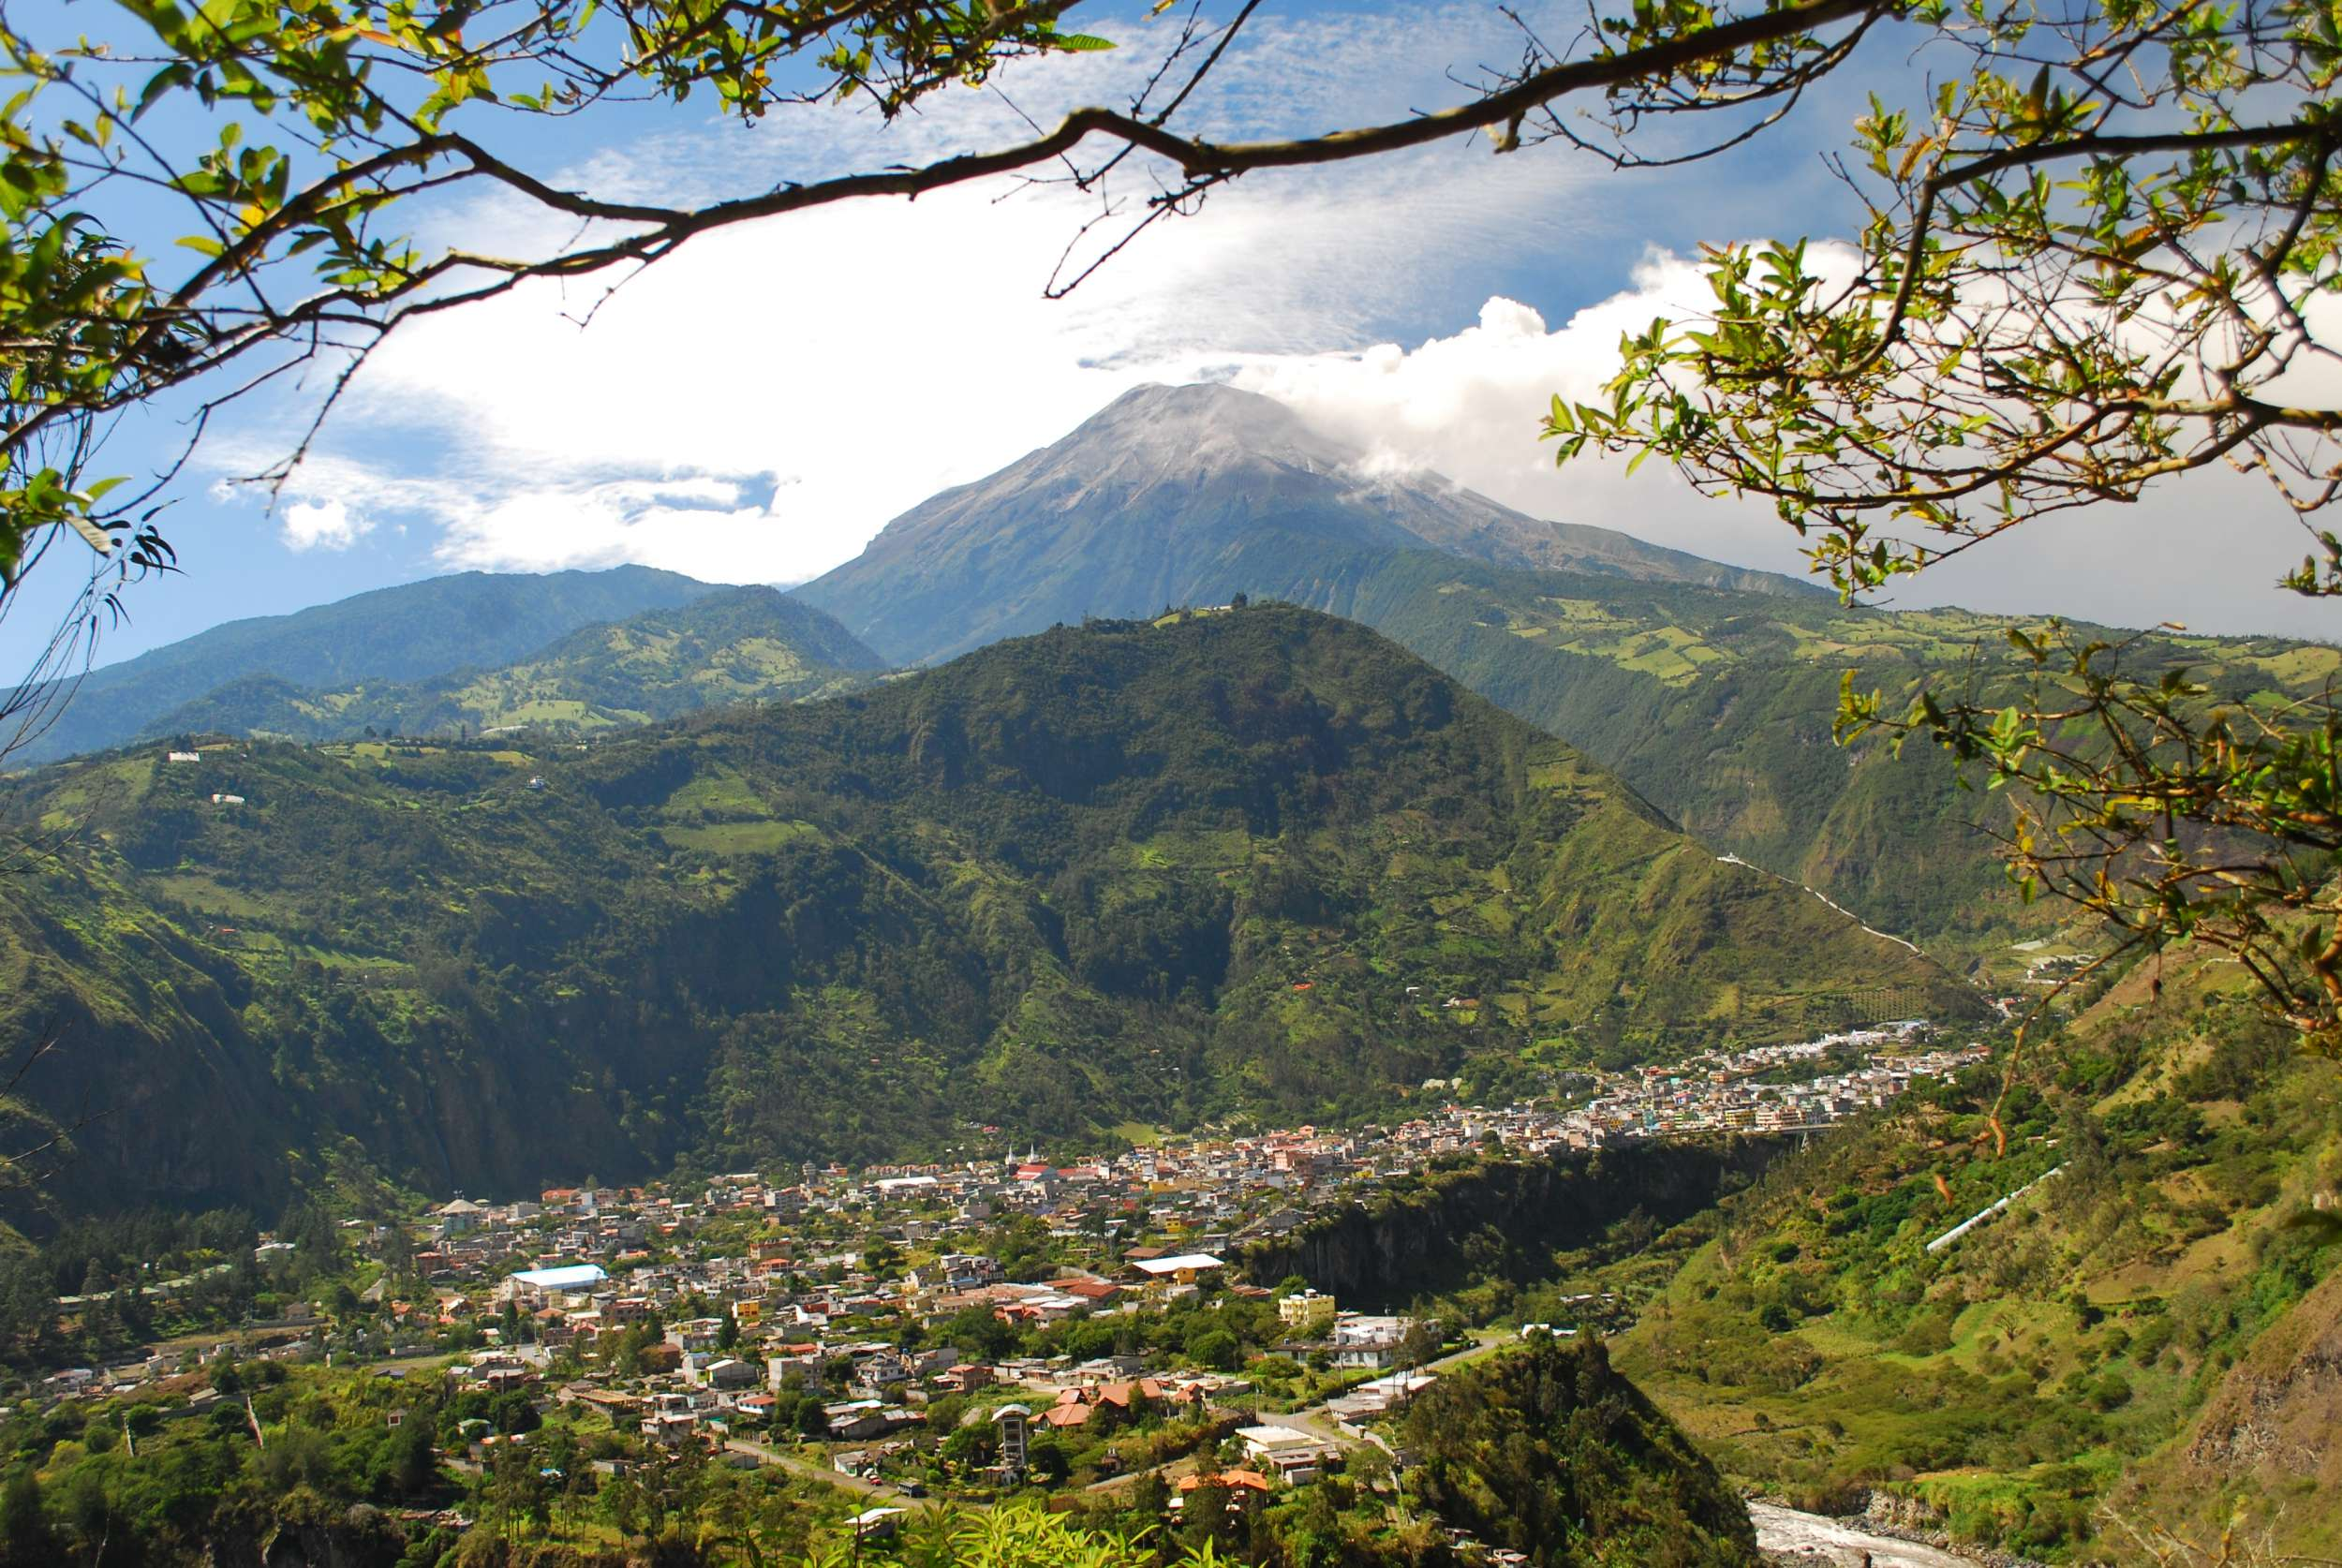 The small town of Baños at the base of an active volcano.